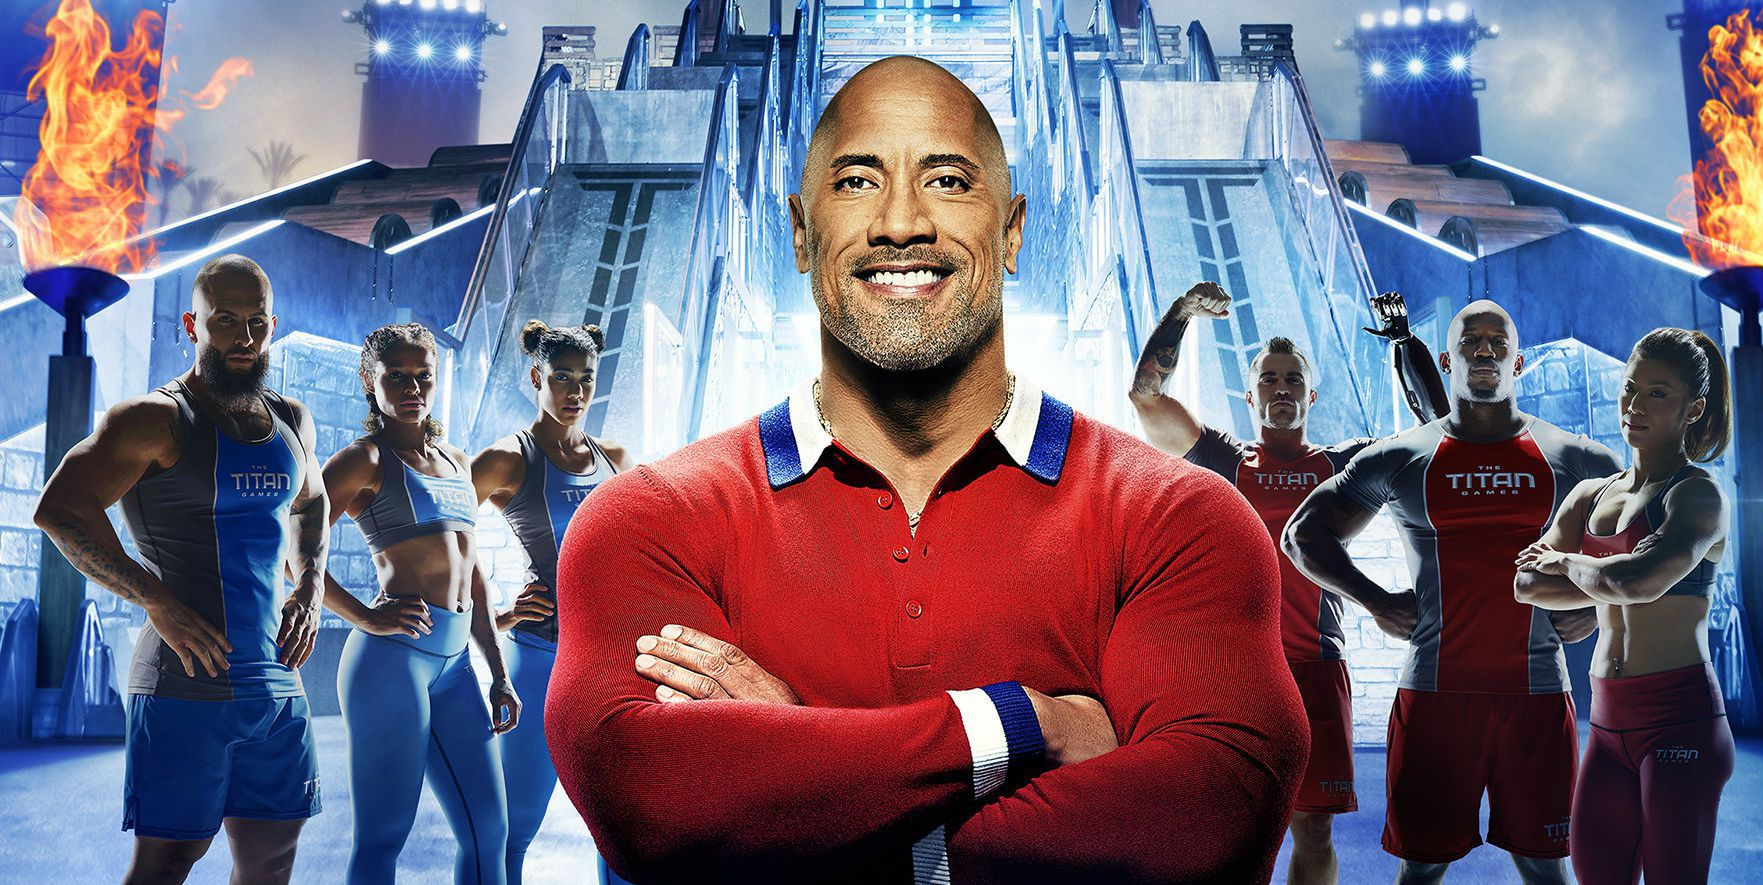 We've Got the First Look at All of the Competitors on The Rock's New Fitness Show